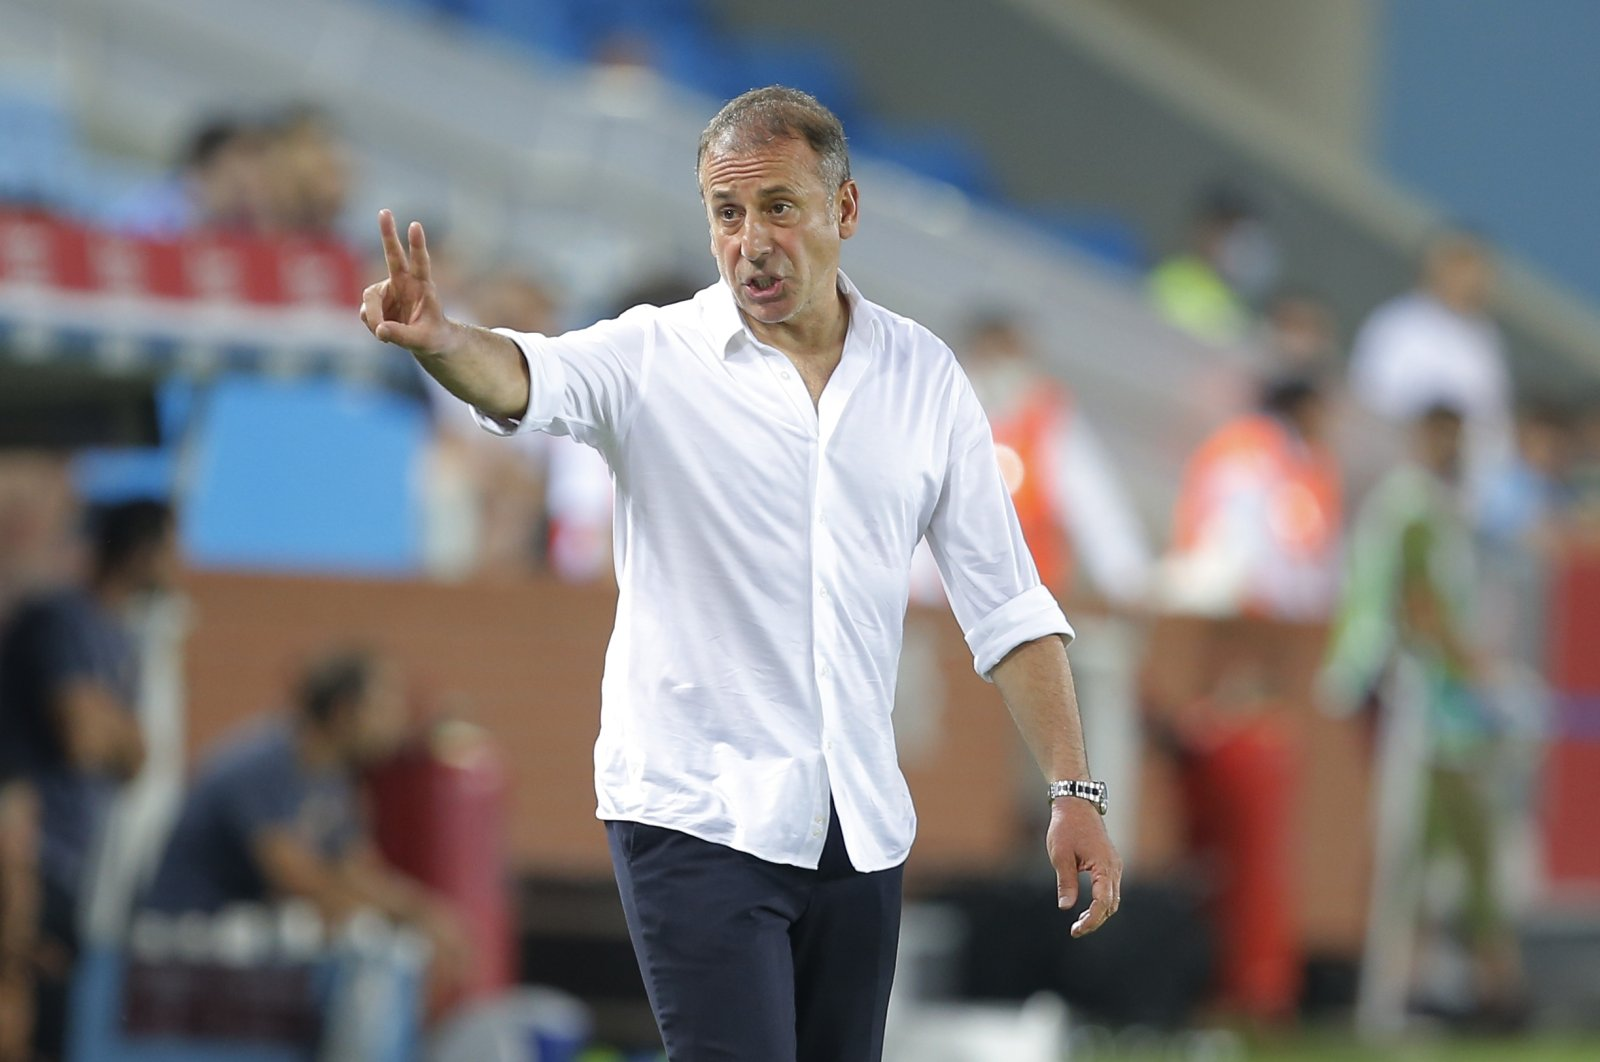 Trabzonspor coach Abdullah Avcı gestures during a Europa Conference League playoff first-leg match against Roma, in Trabzon, Turkey, Aug. 19, 2021. (AP Photo)